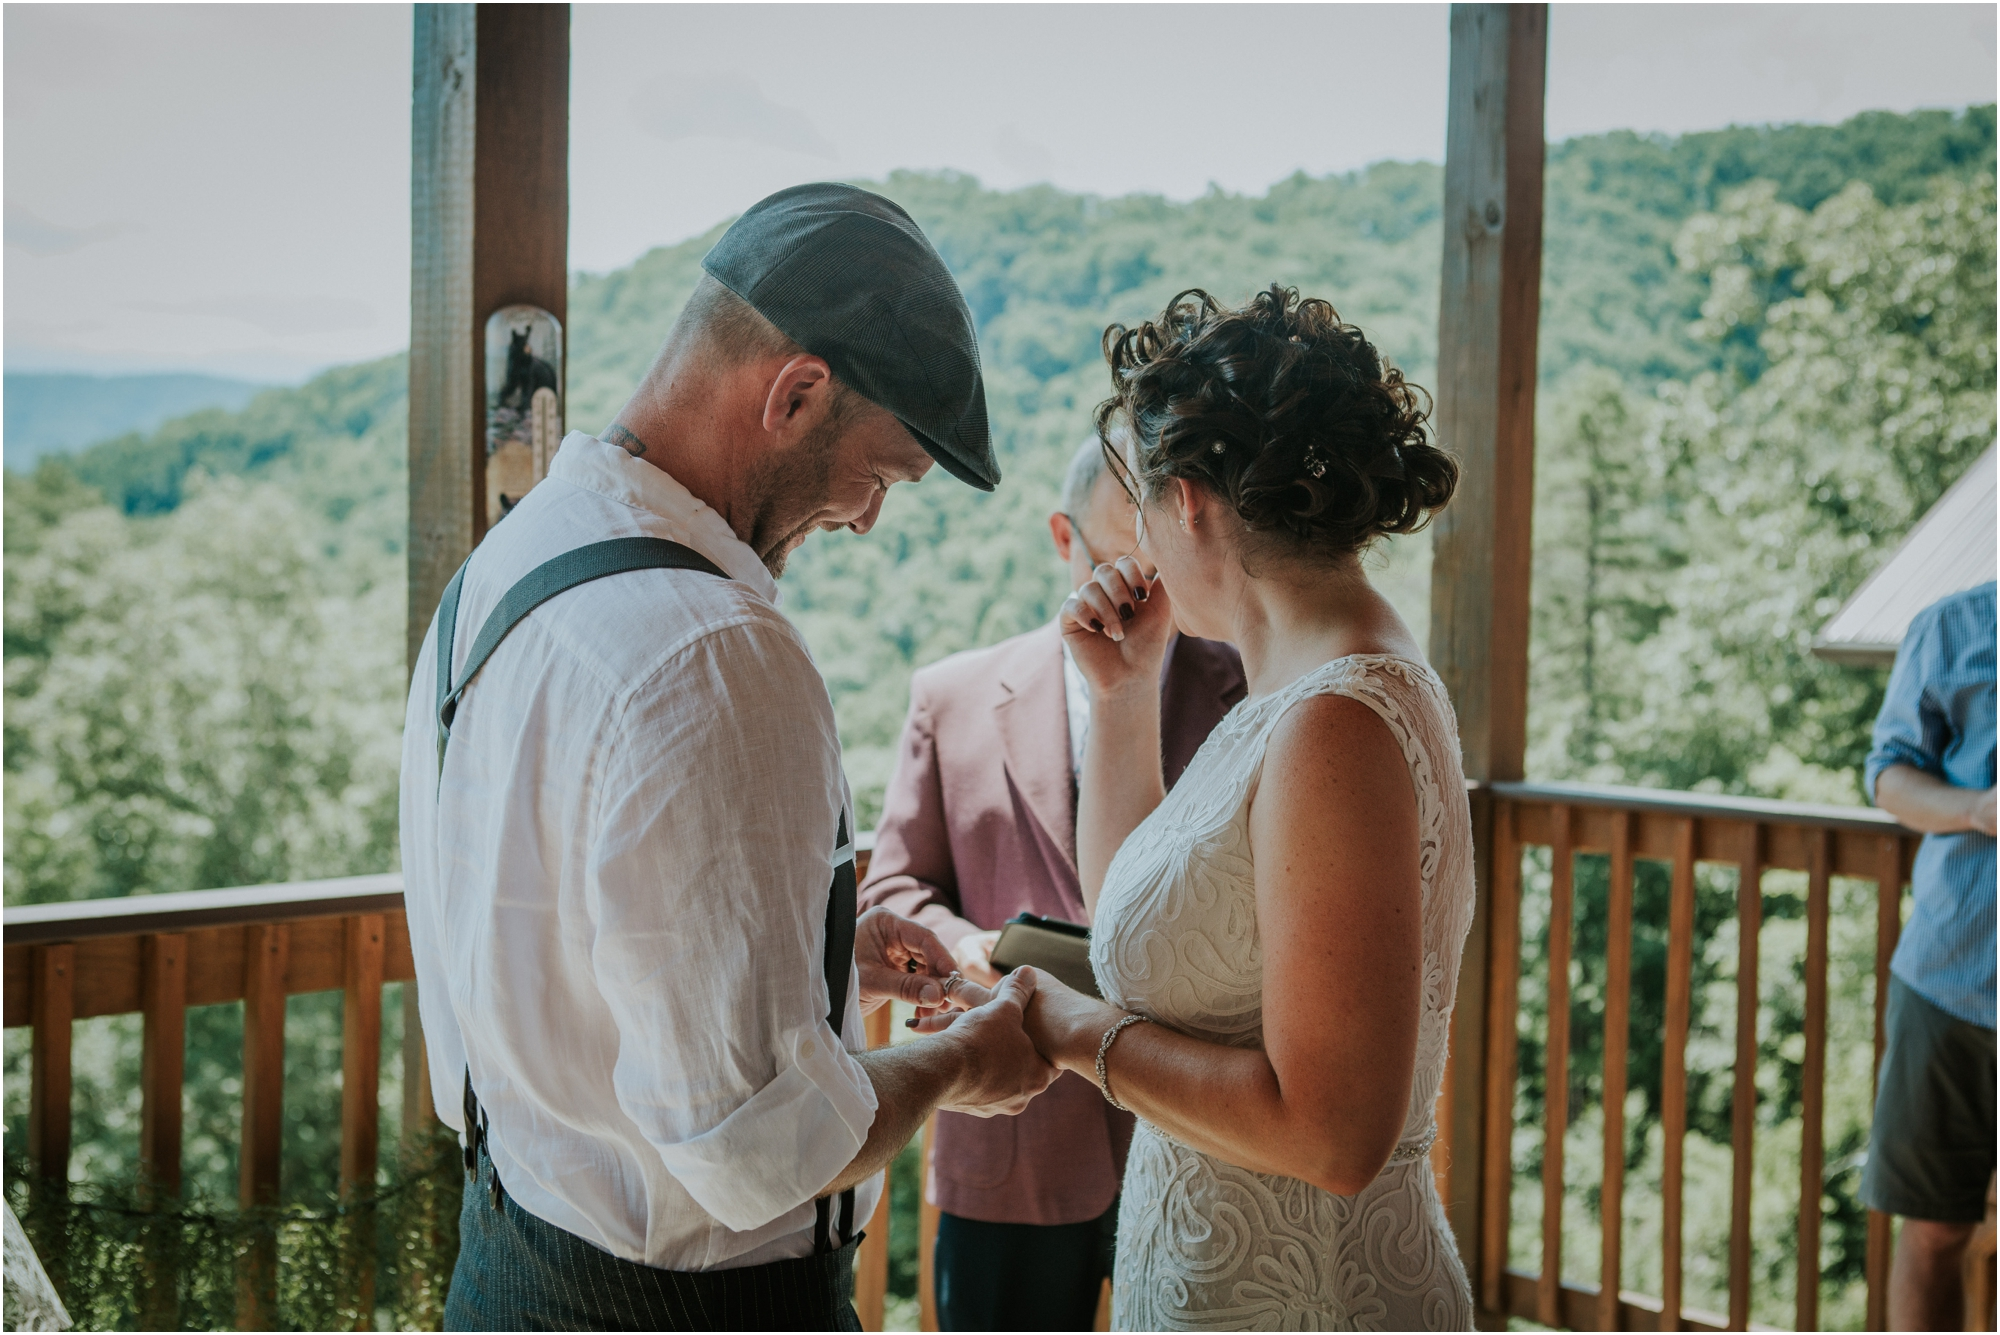 cabin-parkside-resort-the-magnolia-venue-tennessee-mountain-views-intimate-wedding_0139.jpg